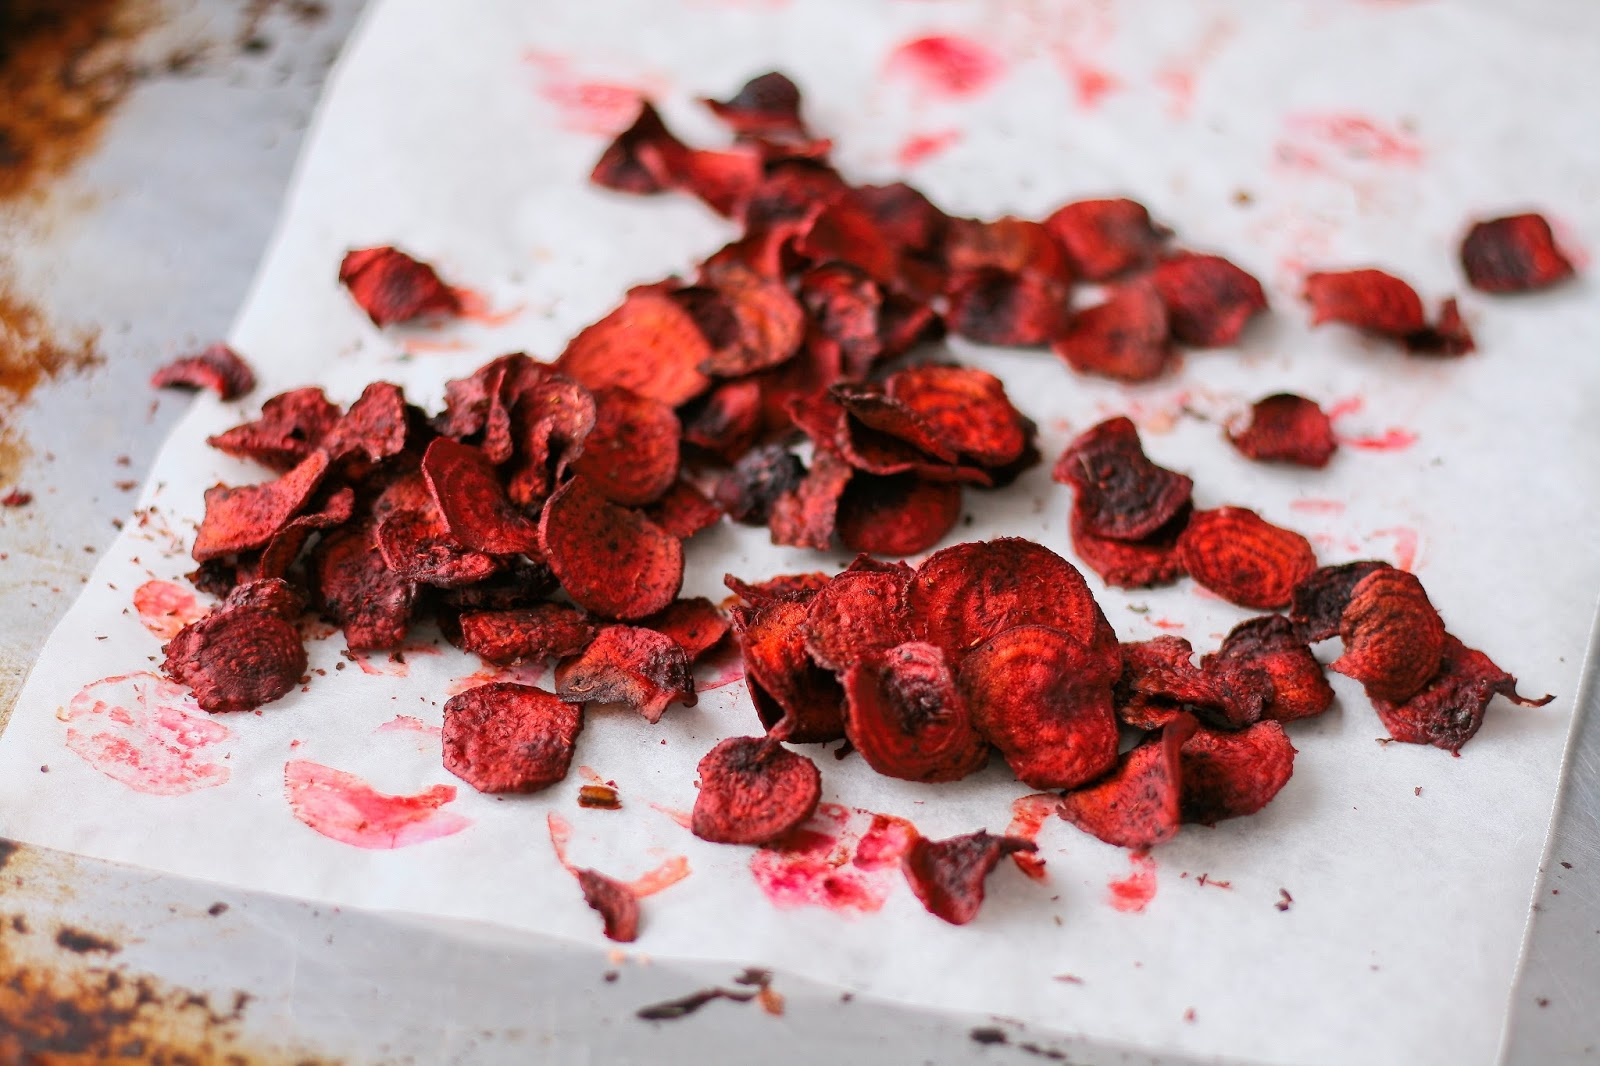 Beetroot crisps on a tray.